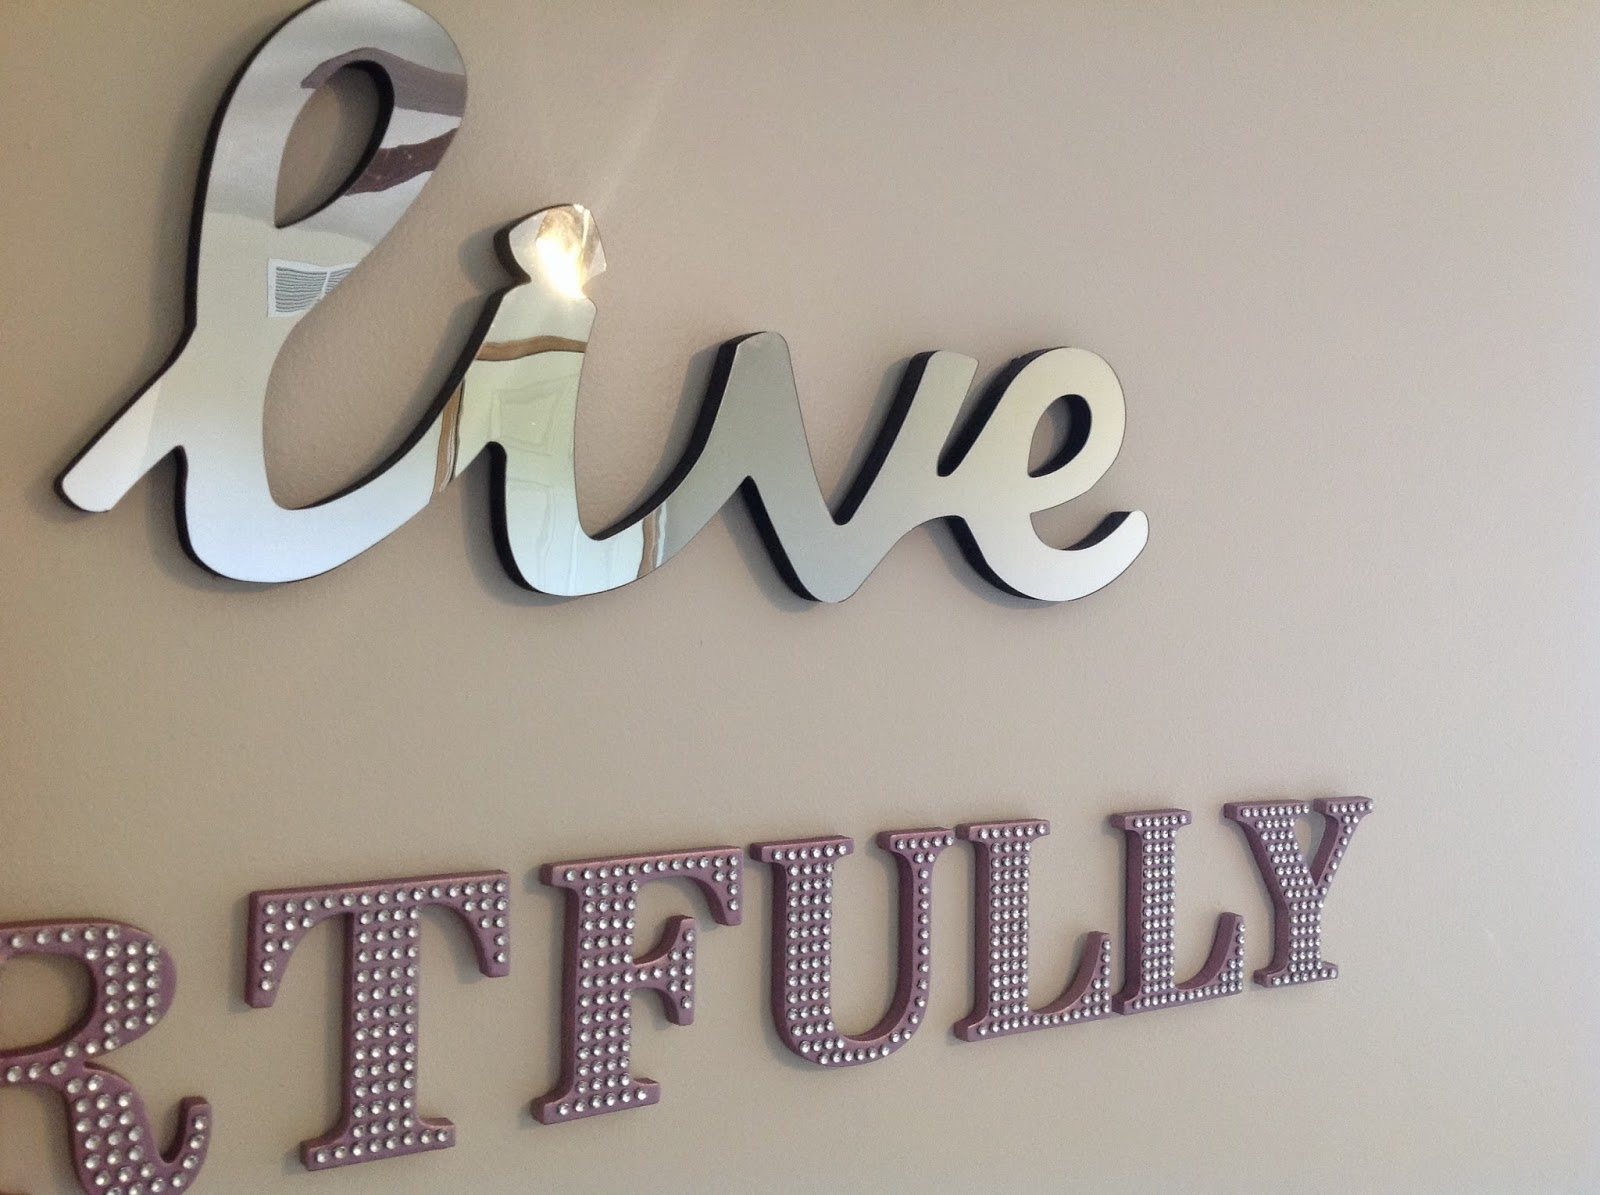 Permalink to Mirrored Letters Wall Decor